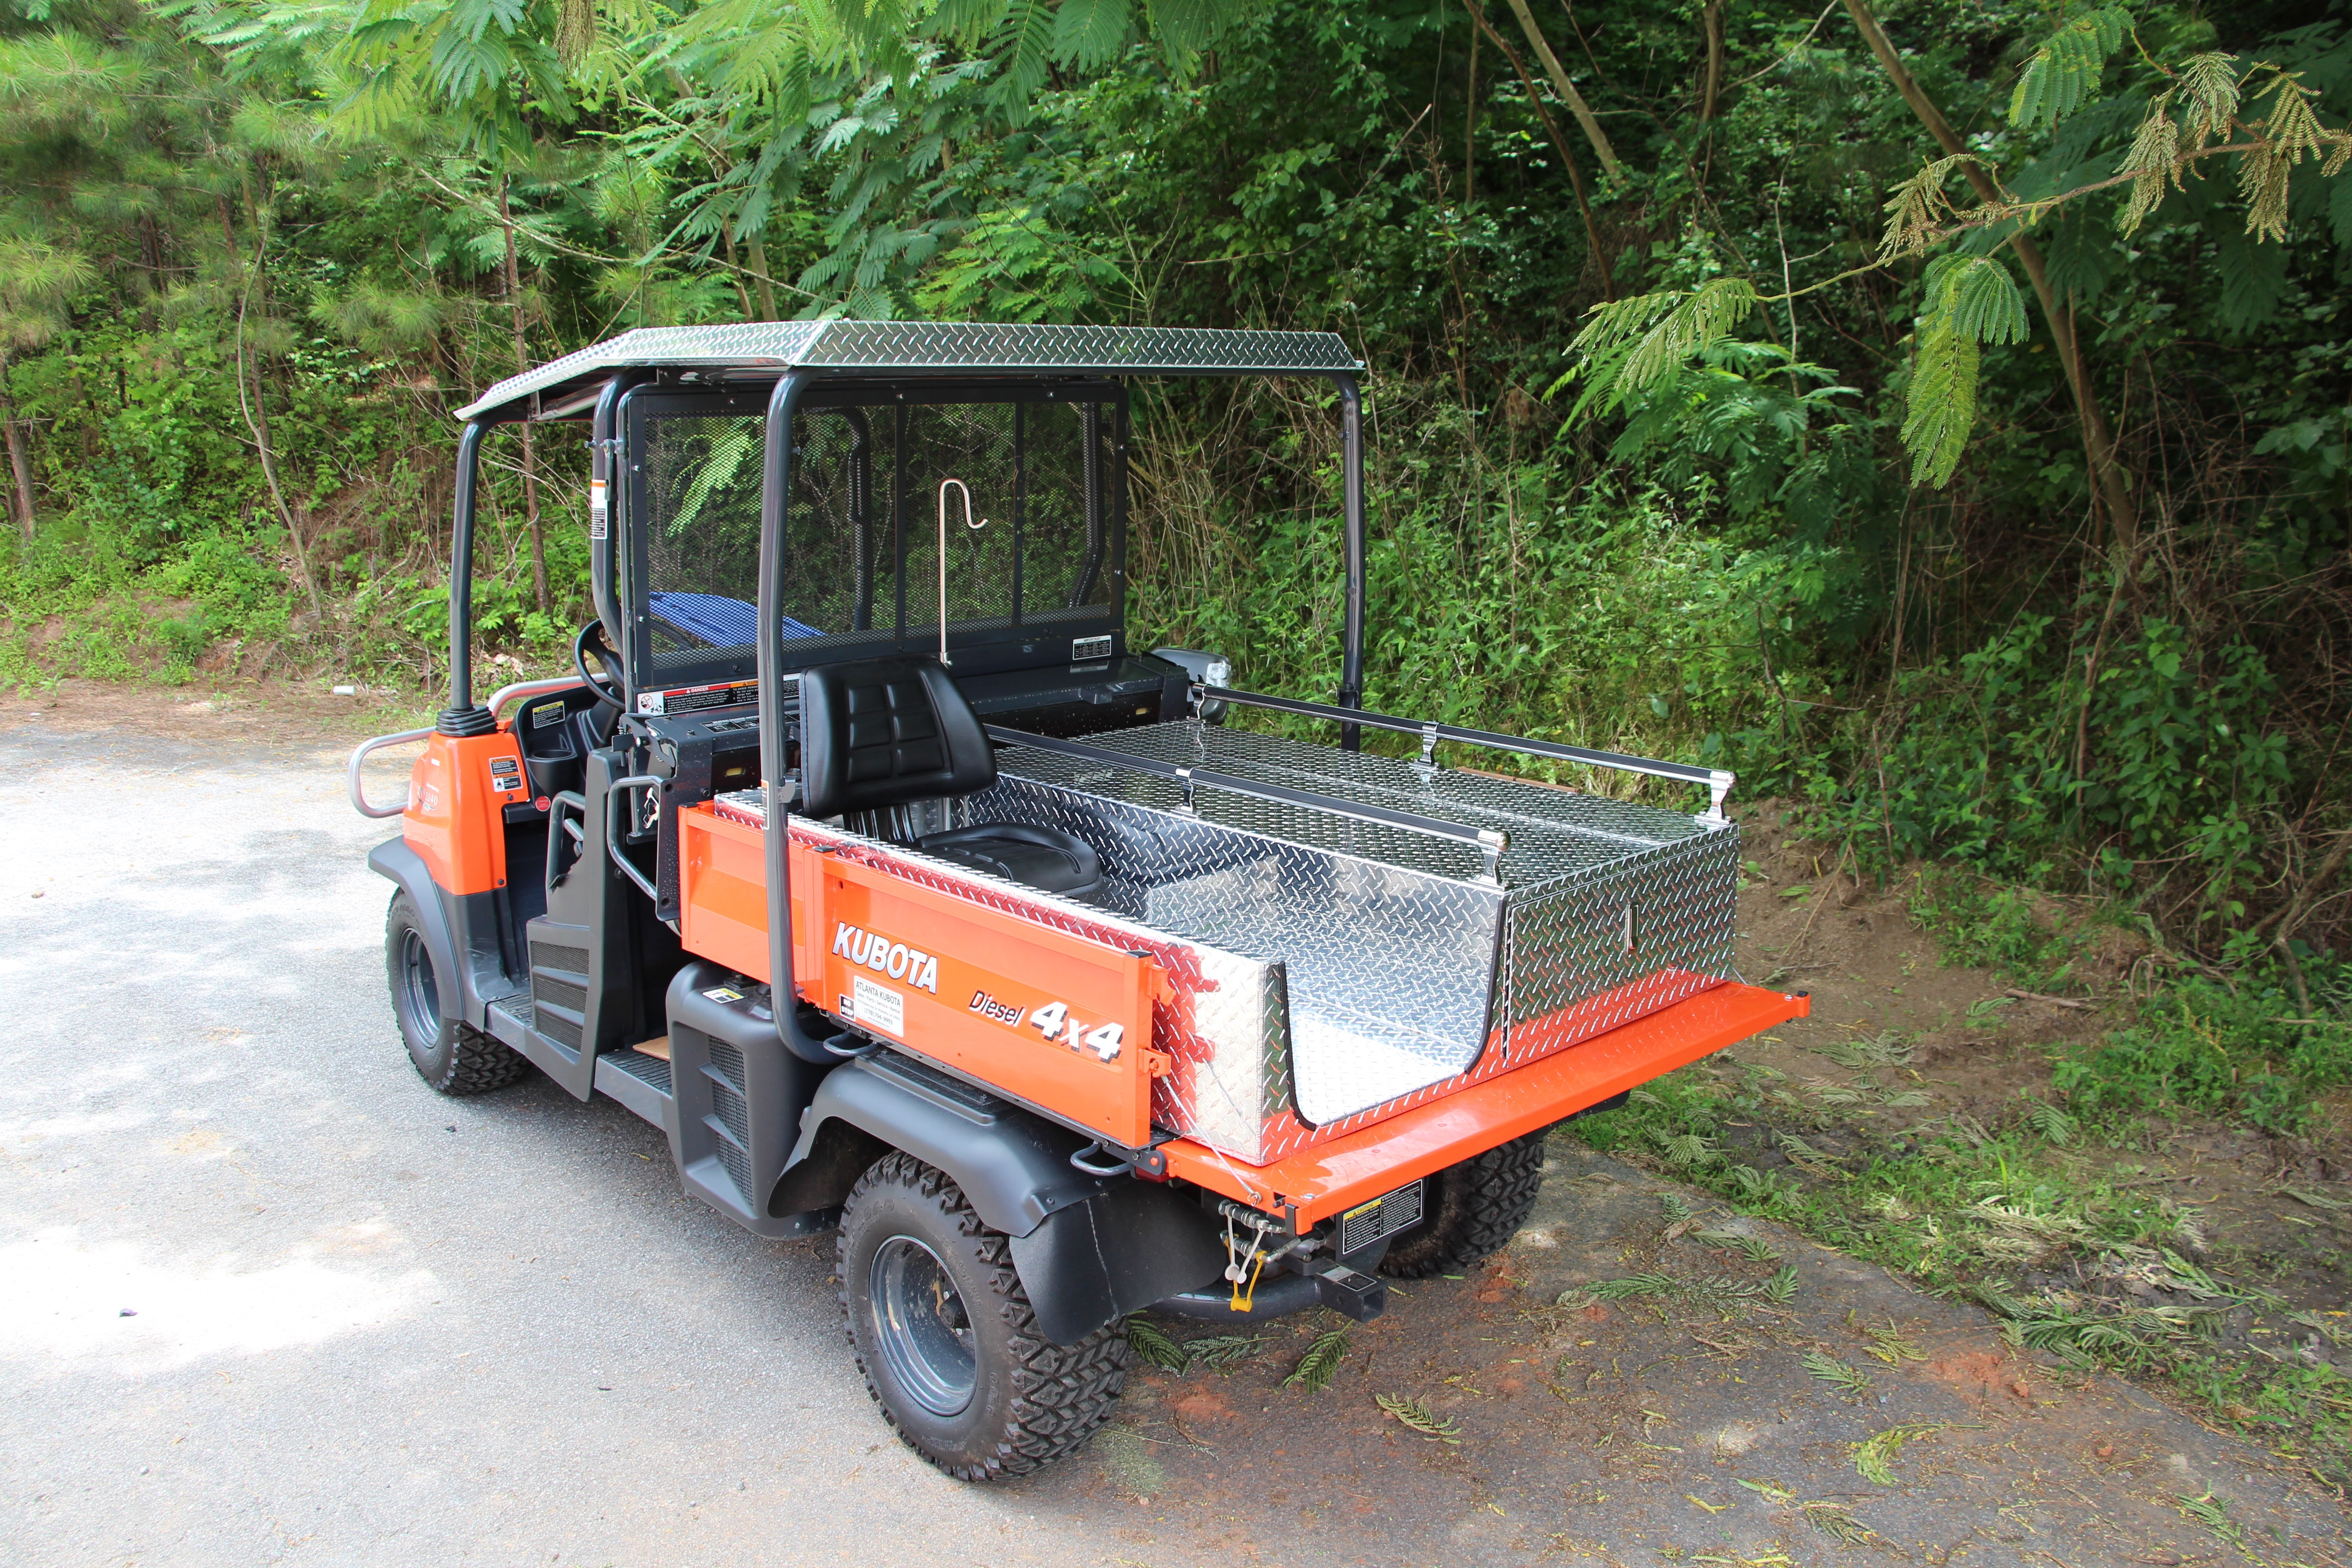 Deluxe Medical Rescue Skid With Provider Seat For The